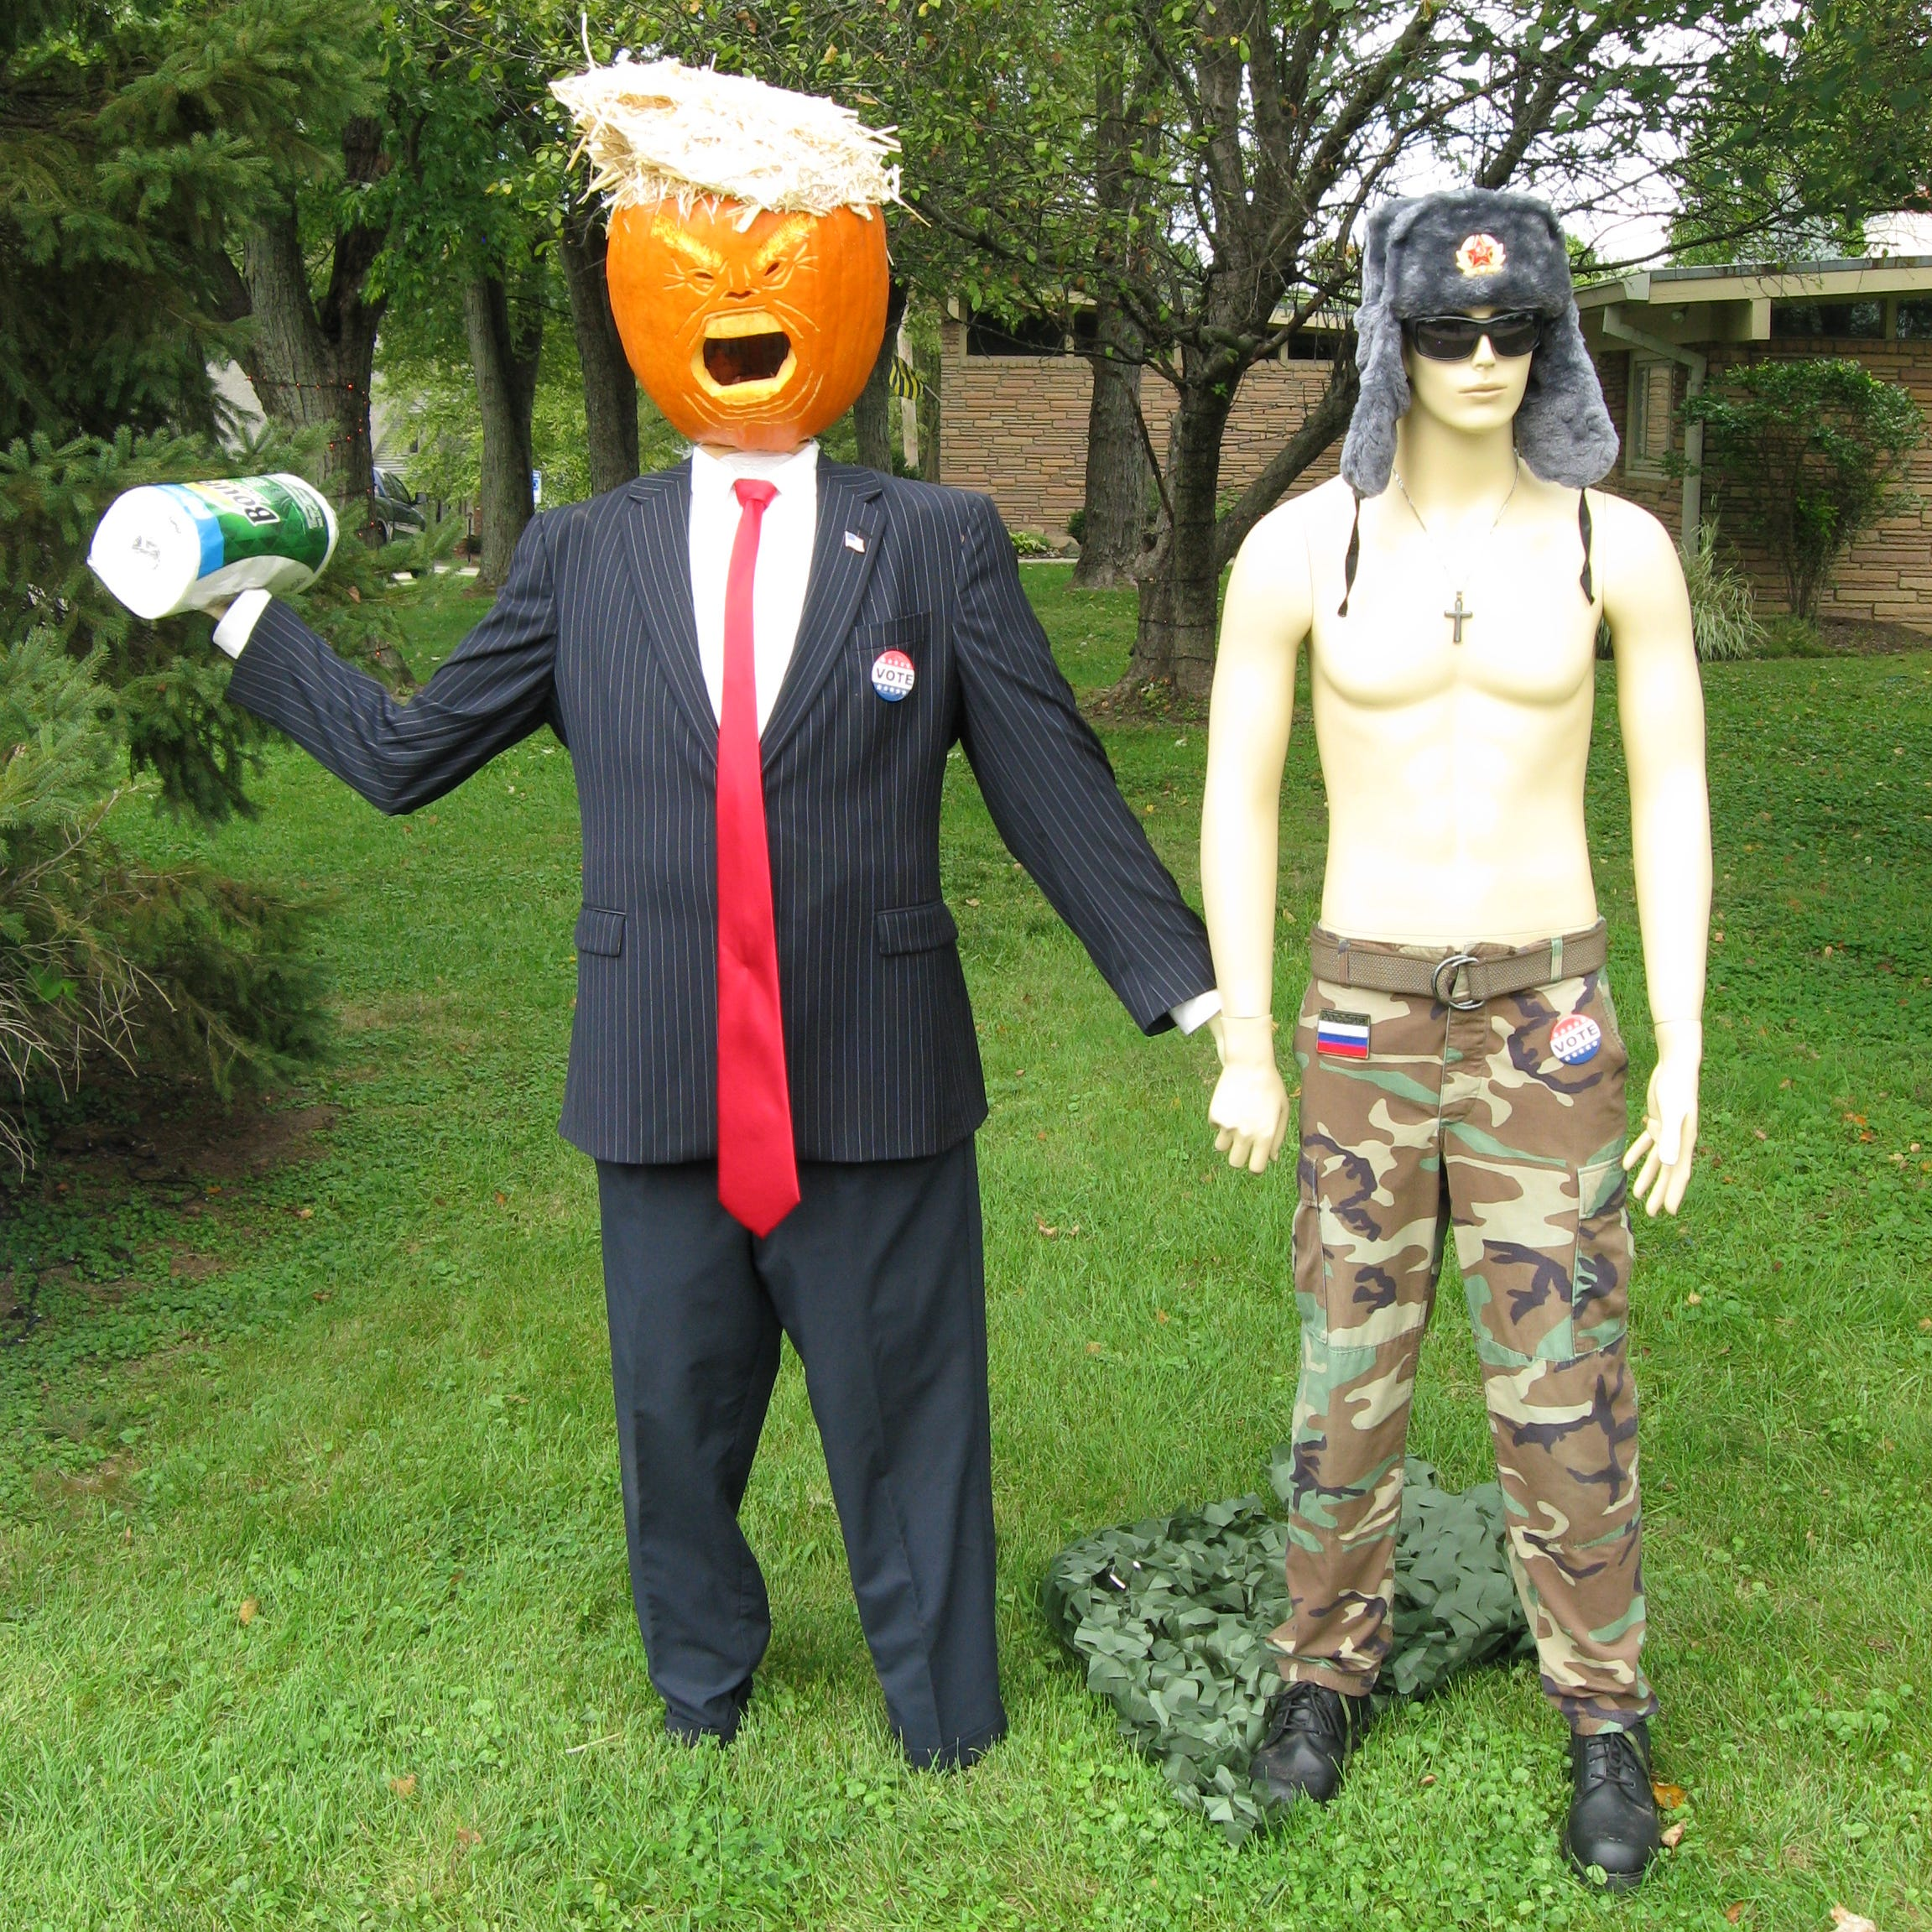 Carmel Trump pumpkin returns with shirtless Putin, Space Force Pence and caged pumpkins